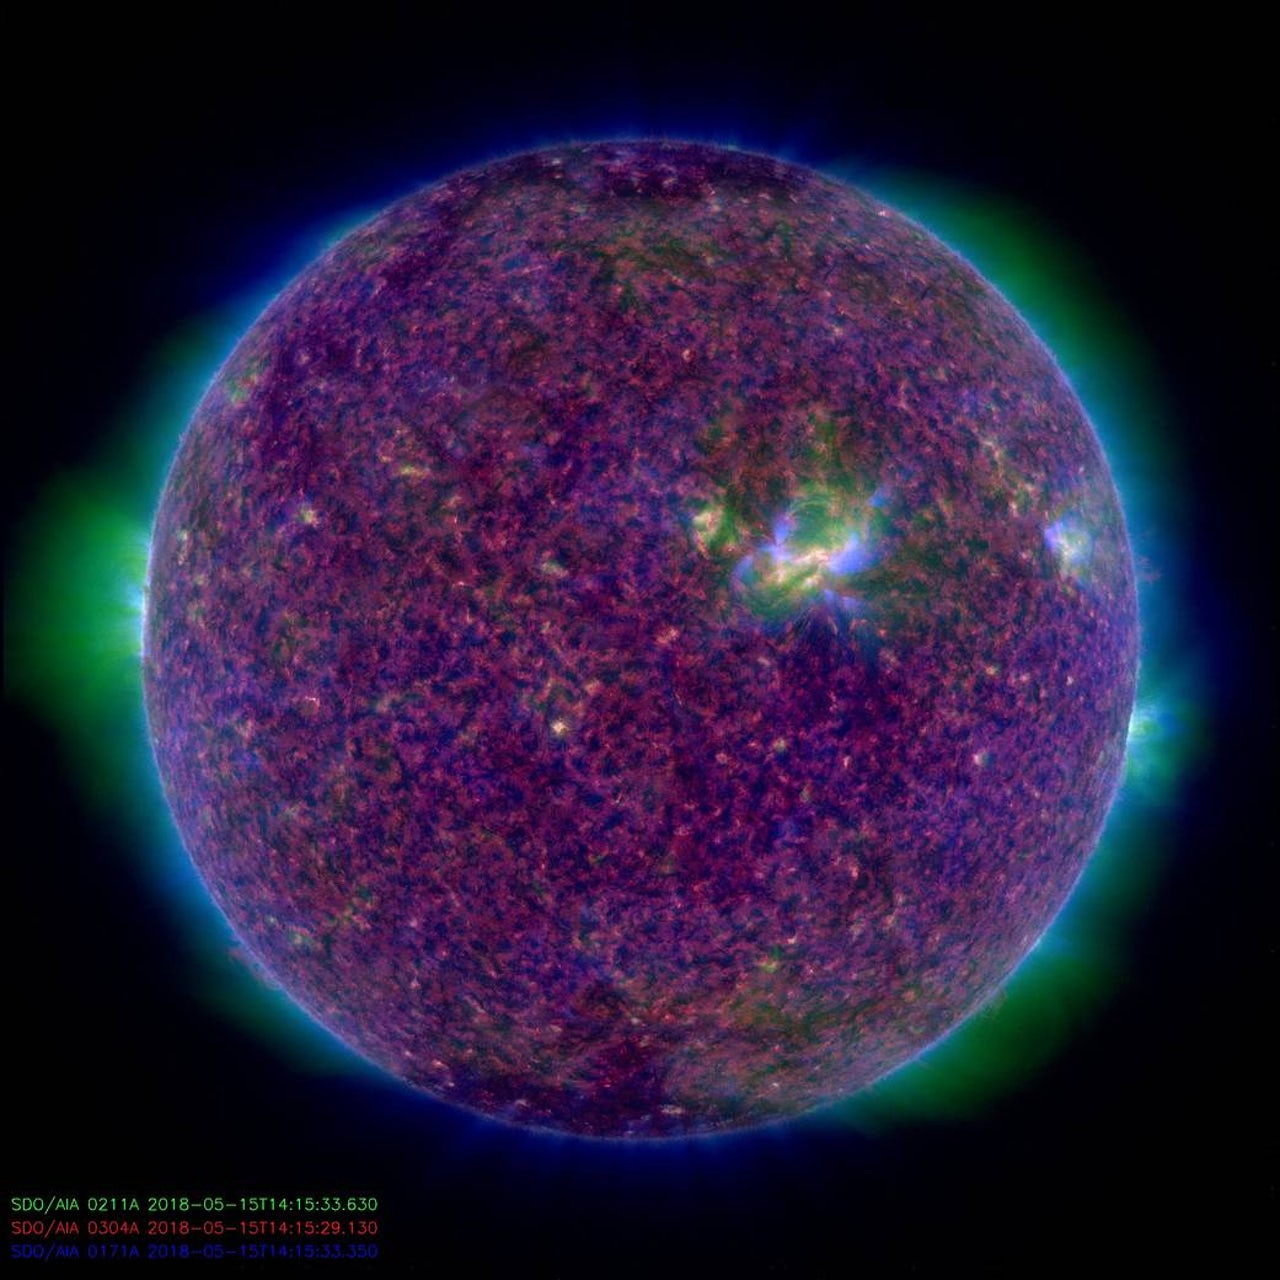 An image of the sun released on May 15, 2018, combining data from three ultraviolet wavelengths.